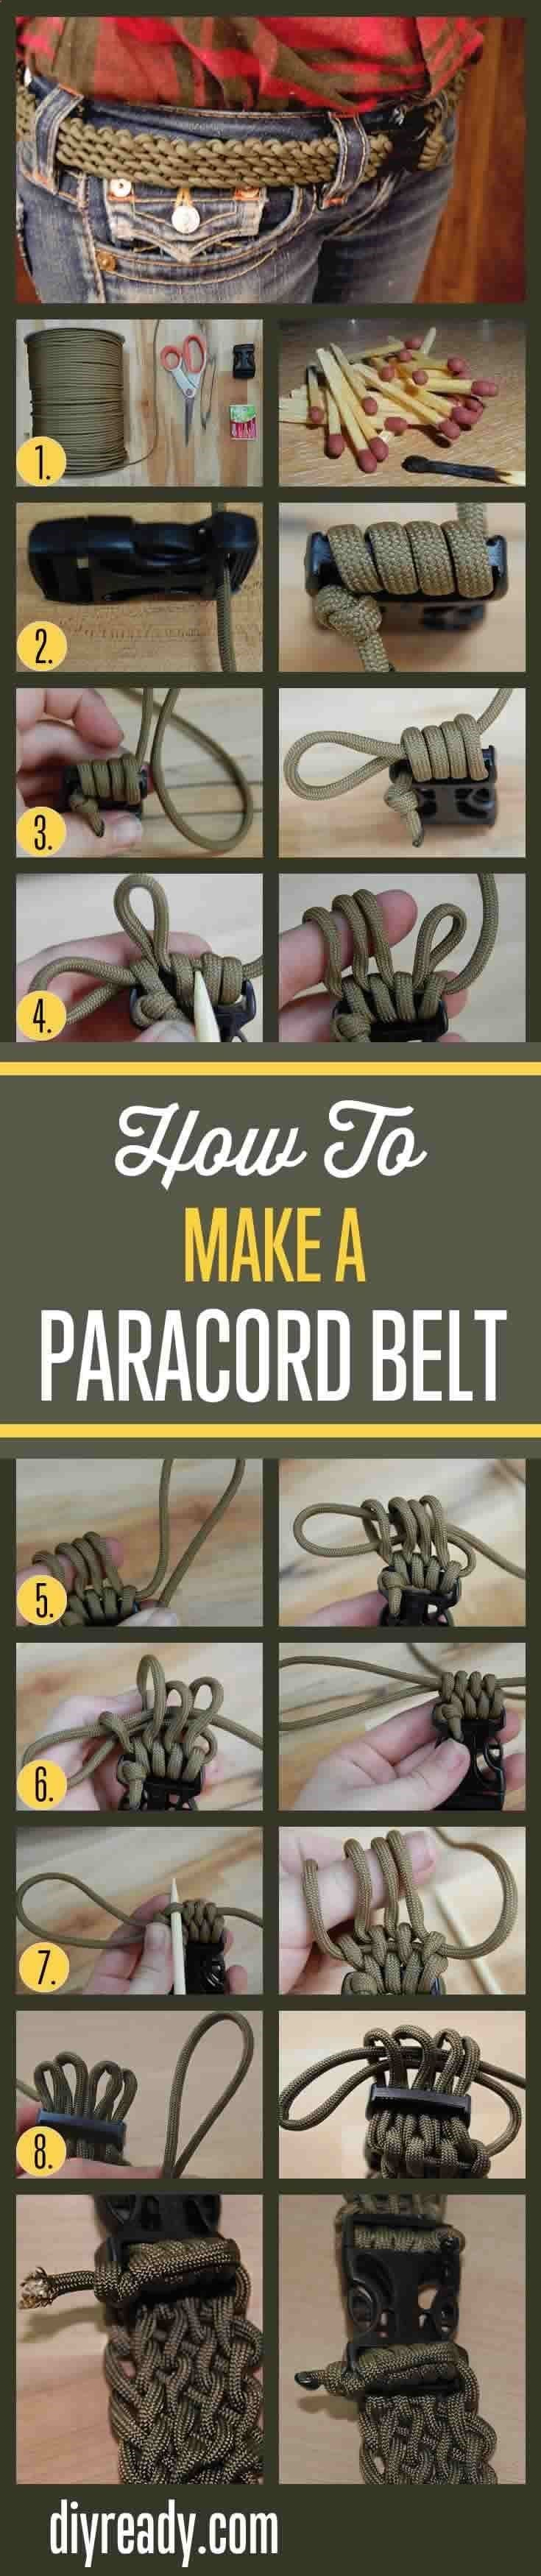 How To Make A Cool DIY Paracord Belt For Emergency Preparedness | Paracord Projects & Ideas By DIY Ready. diyready.com/...